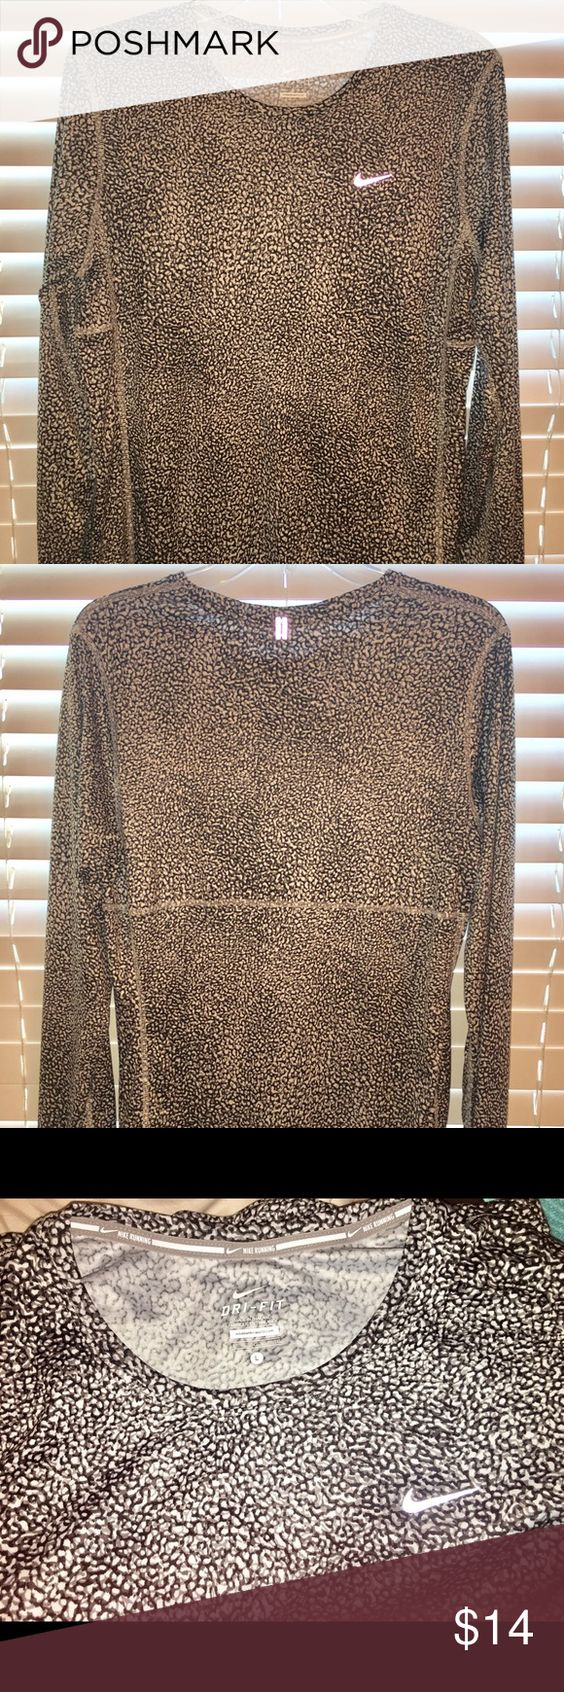 Nike Ladies DriFIT Long Sleeved Running shirt Nike ladies DriFIT Long Sleeved  running shirt.  100% Polyester.  DriFIT mesh fabric wicks away sweat do you help keep you dry and comfortable.  Reflective loop on the back of shirt helps keep media cords out of the way.  Like New - worn one time only! Nike Tops Tees - Long Sleeve